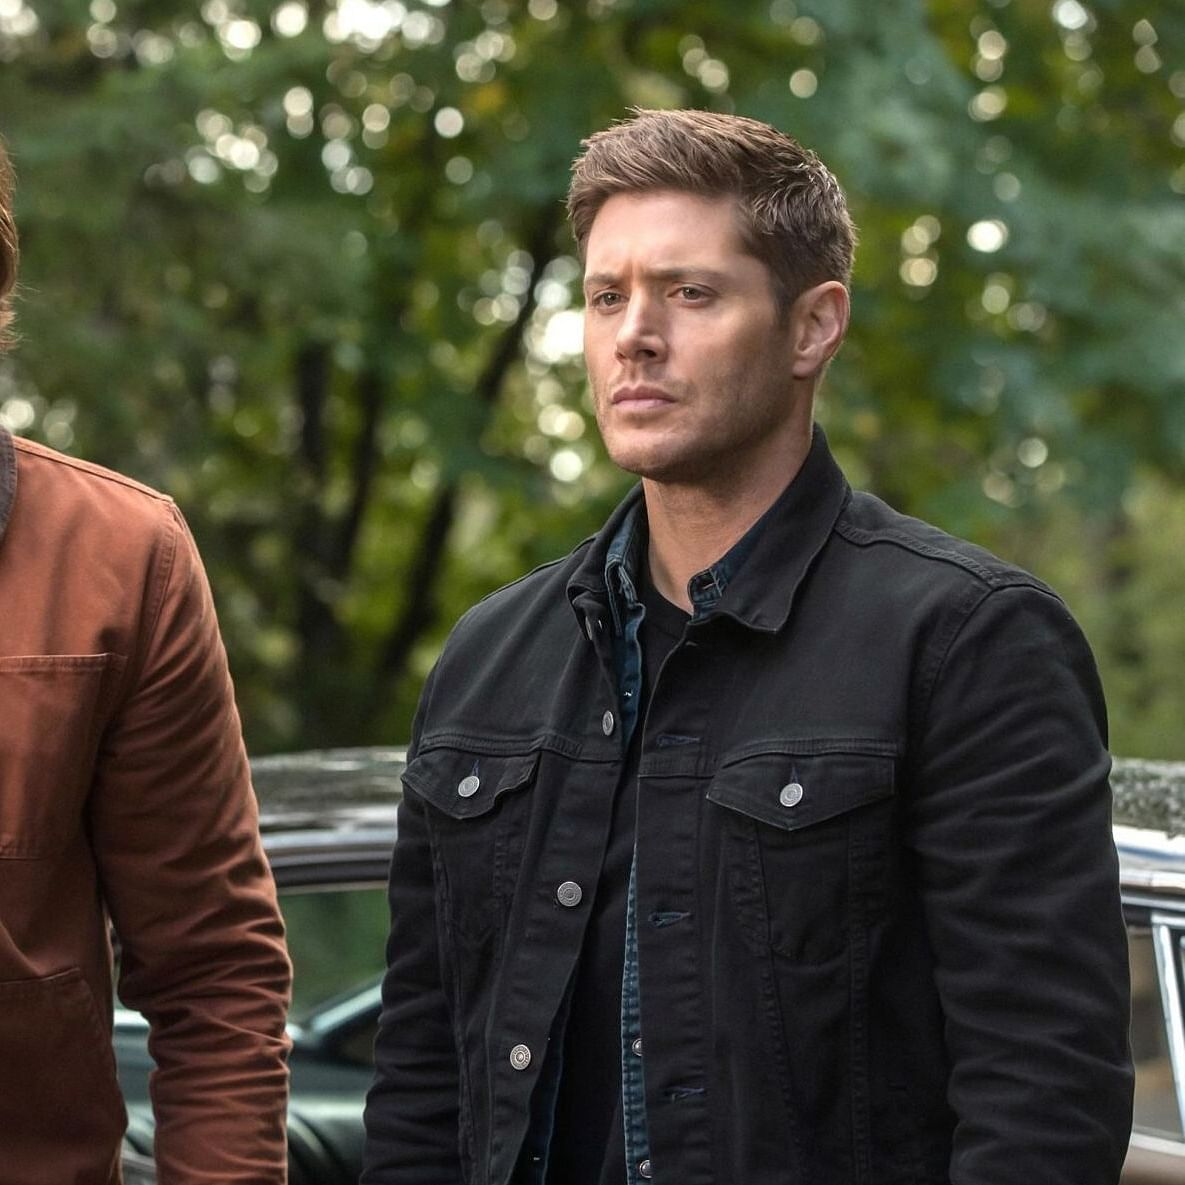 'Supernatural' prequel 'The Winchesters' in works; Jensen Ackles to reprise his role of Dean